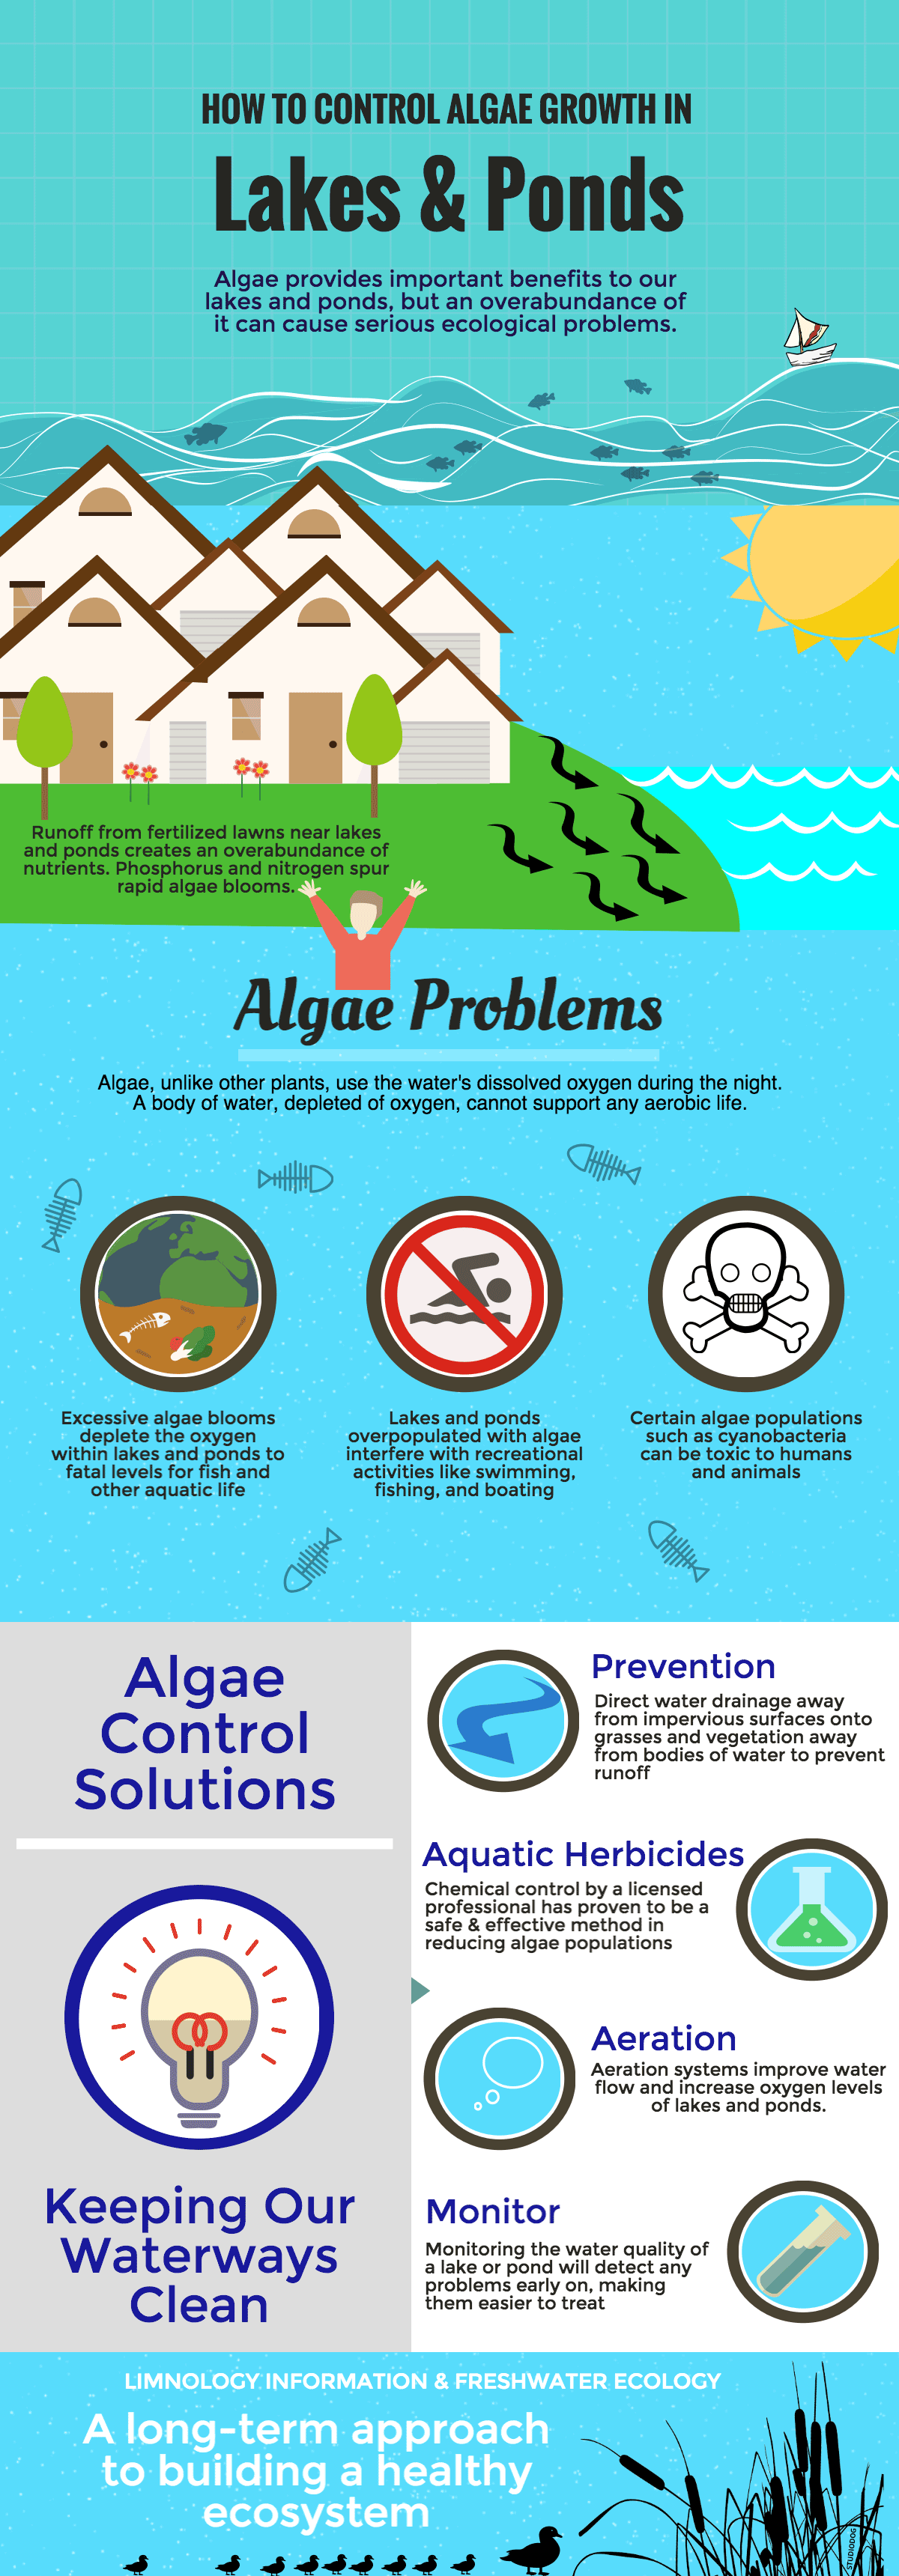 NYC-Algae-Control-Lakes-and-Ponds-Management